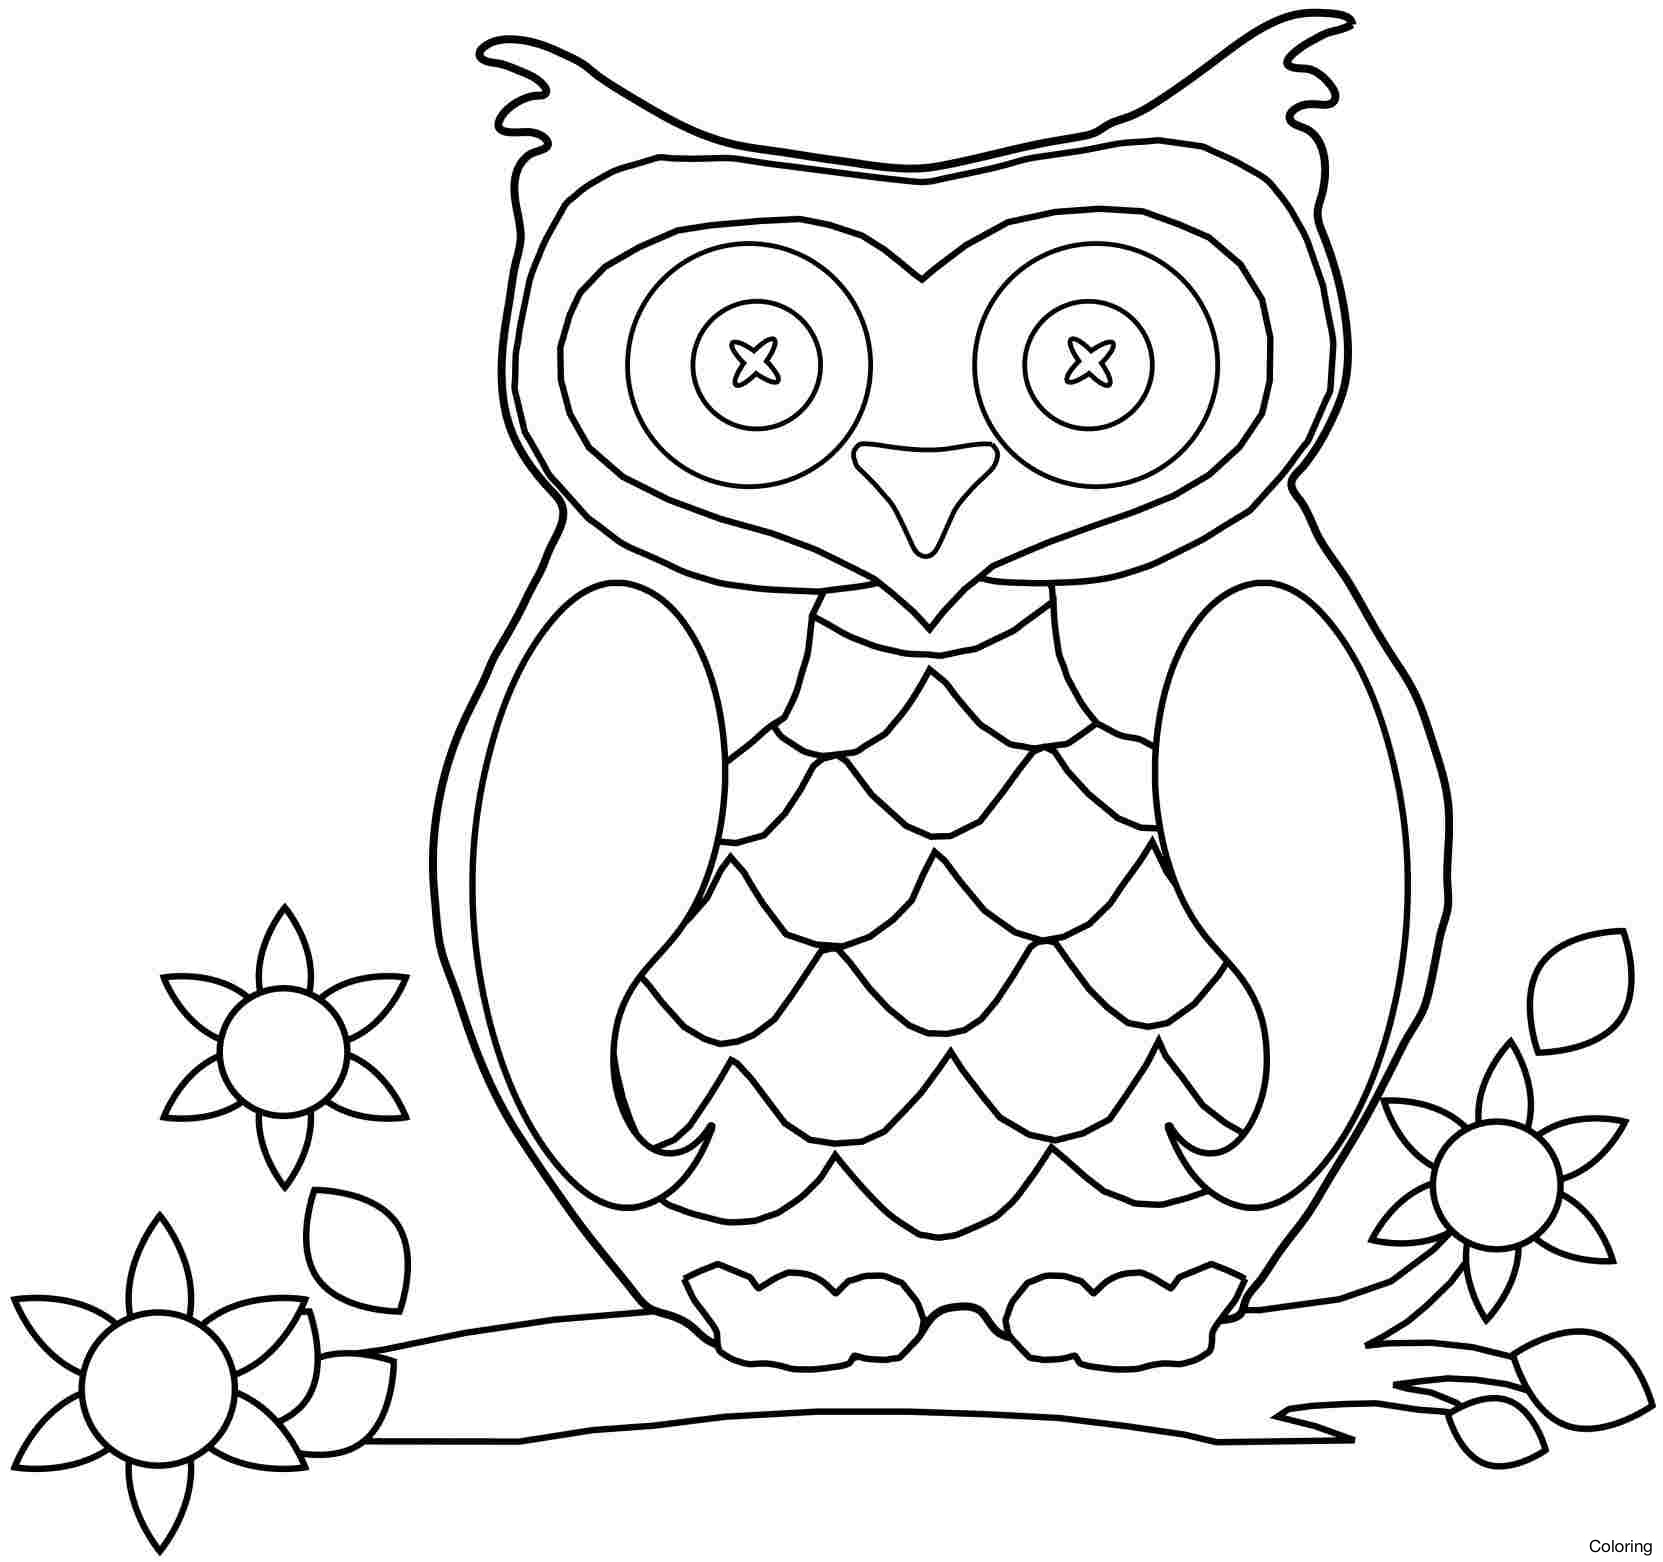 1663x1562 Cute Owl Coloring Pages For Girls Free Download Image 12f Easy